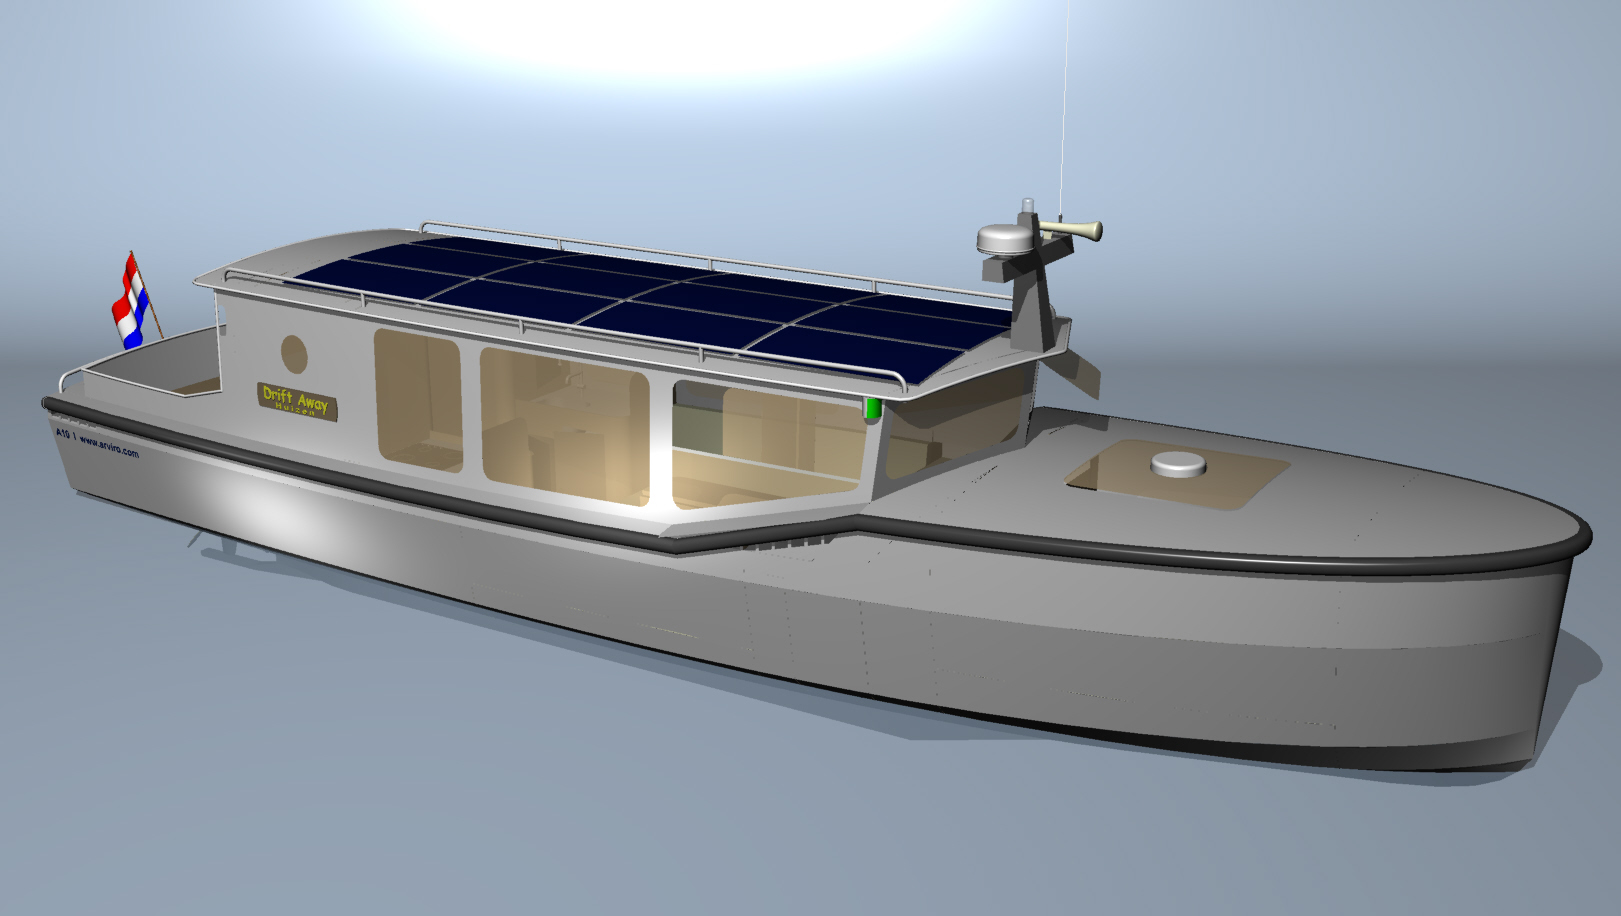 All electric & solar powered motorboat - Boat Design Forums